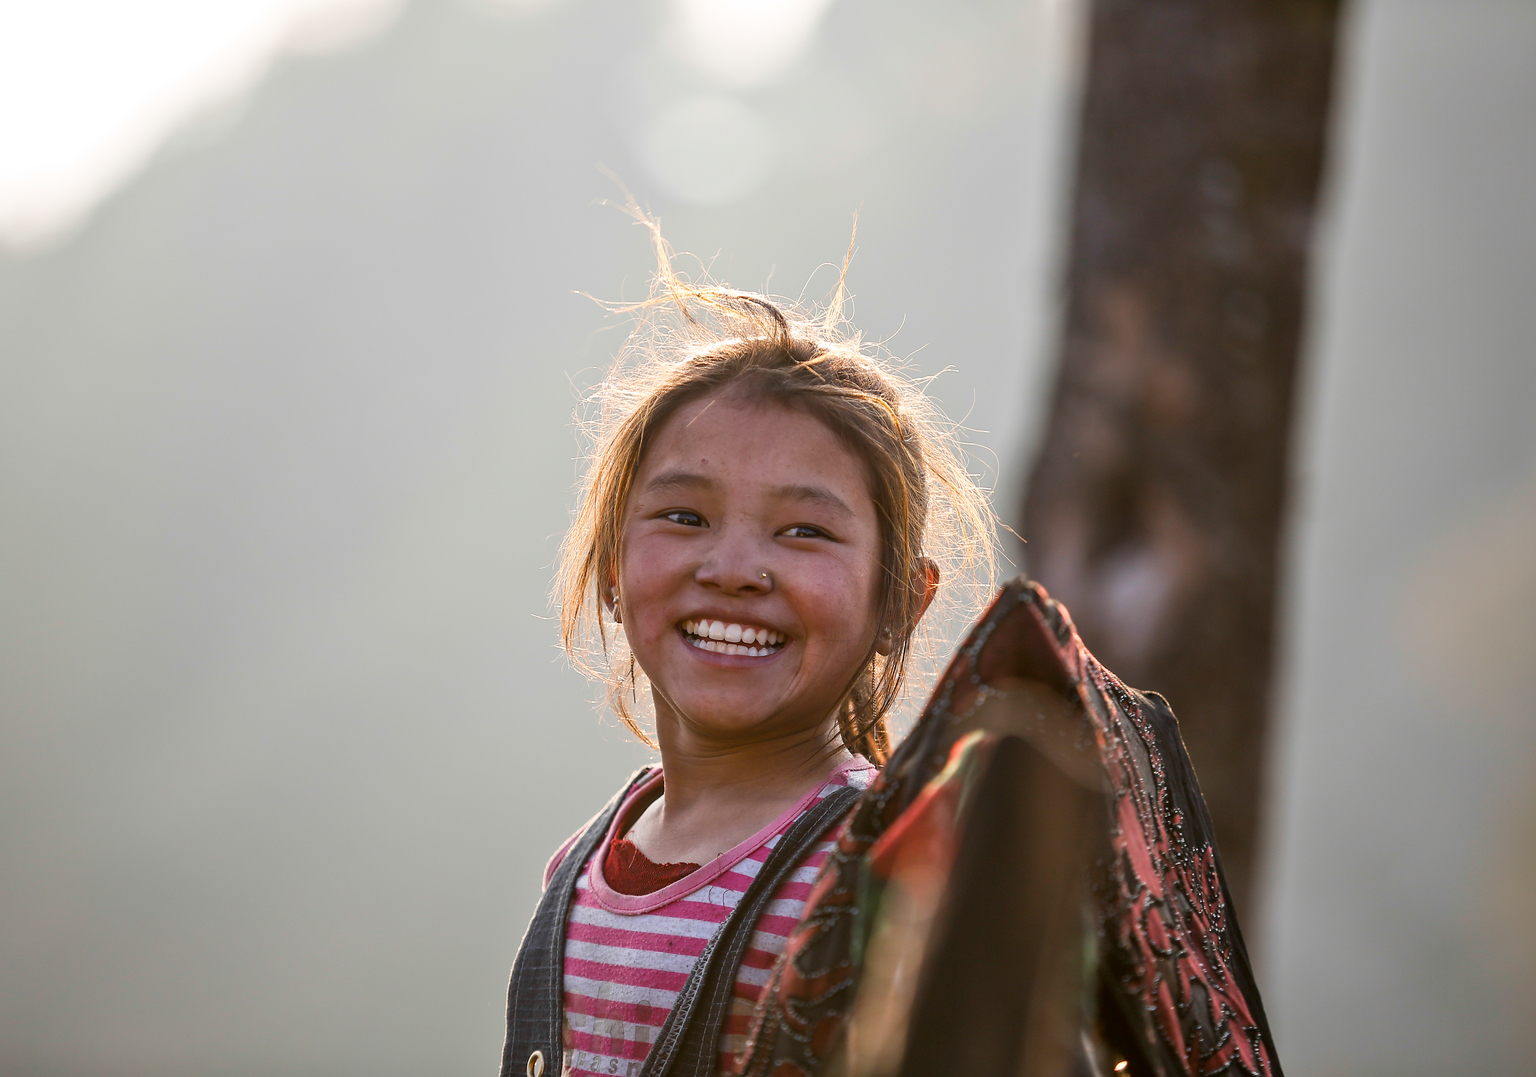 A girl in Nepal smiles past a UNICEF photographer in Barpak, Nepal in January 2016. 1400 homes were destroyed in her village in the 2015 earthquakes. Ethan and the New Zealand comms team were able to document and cover some of Nepal's recovery in 2015 ( © UNICEF/UN017159/Shrestha)